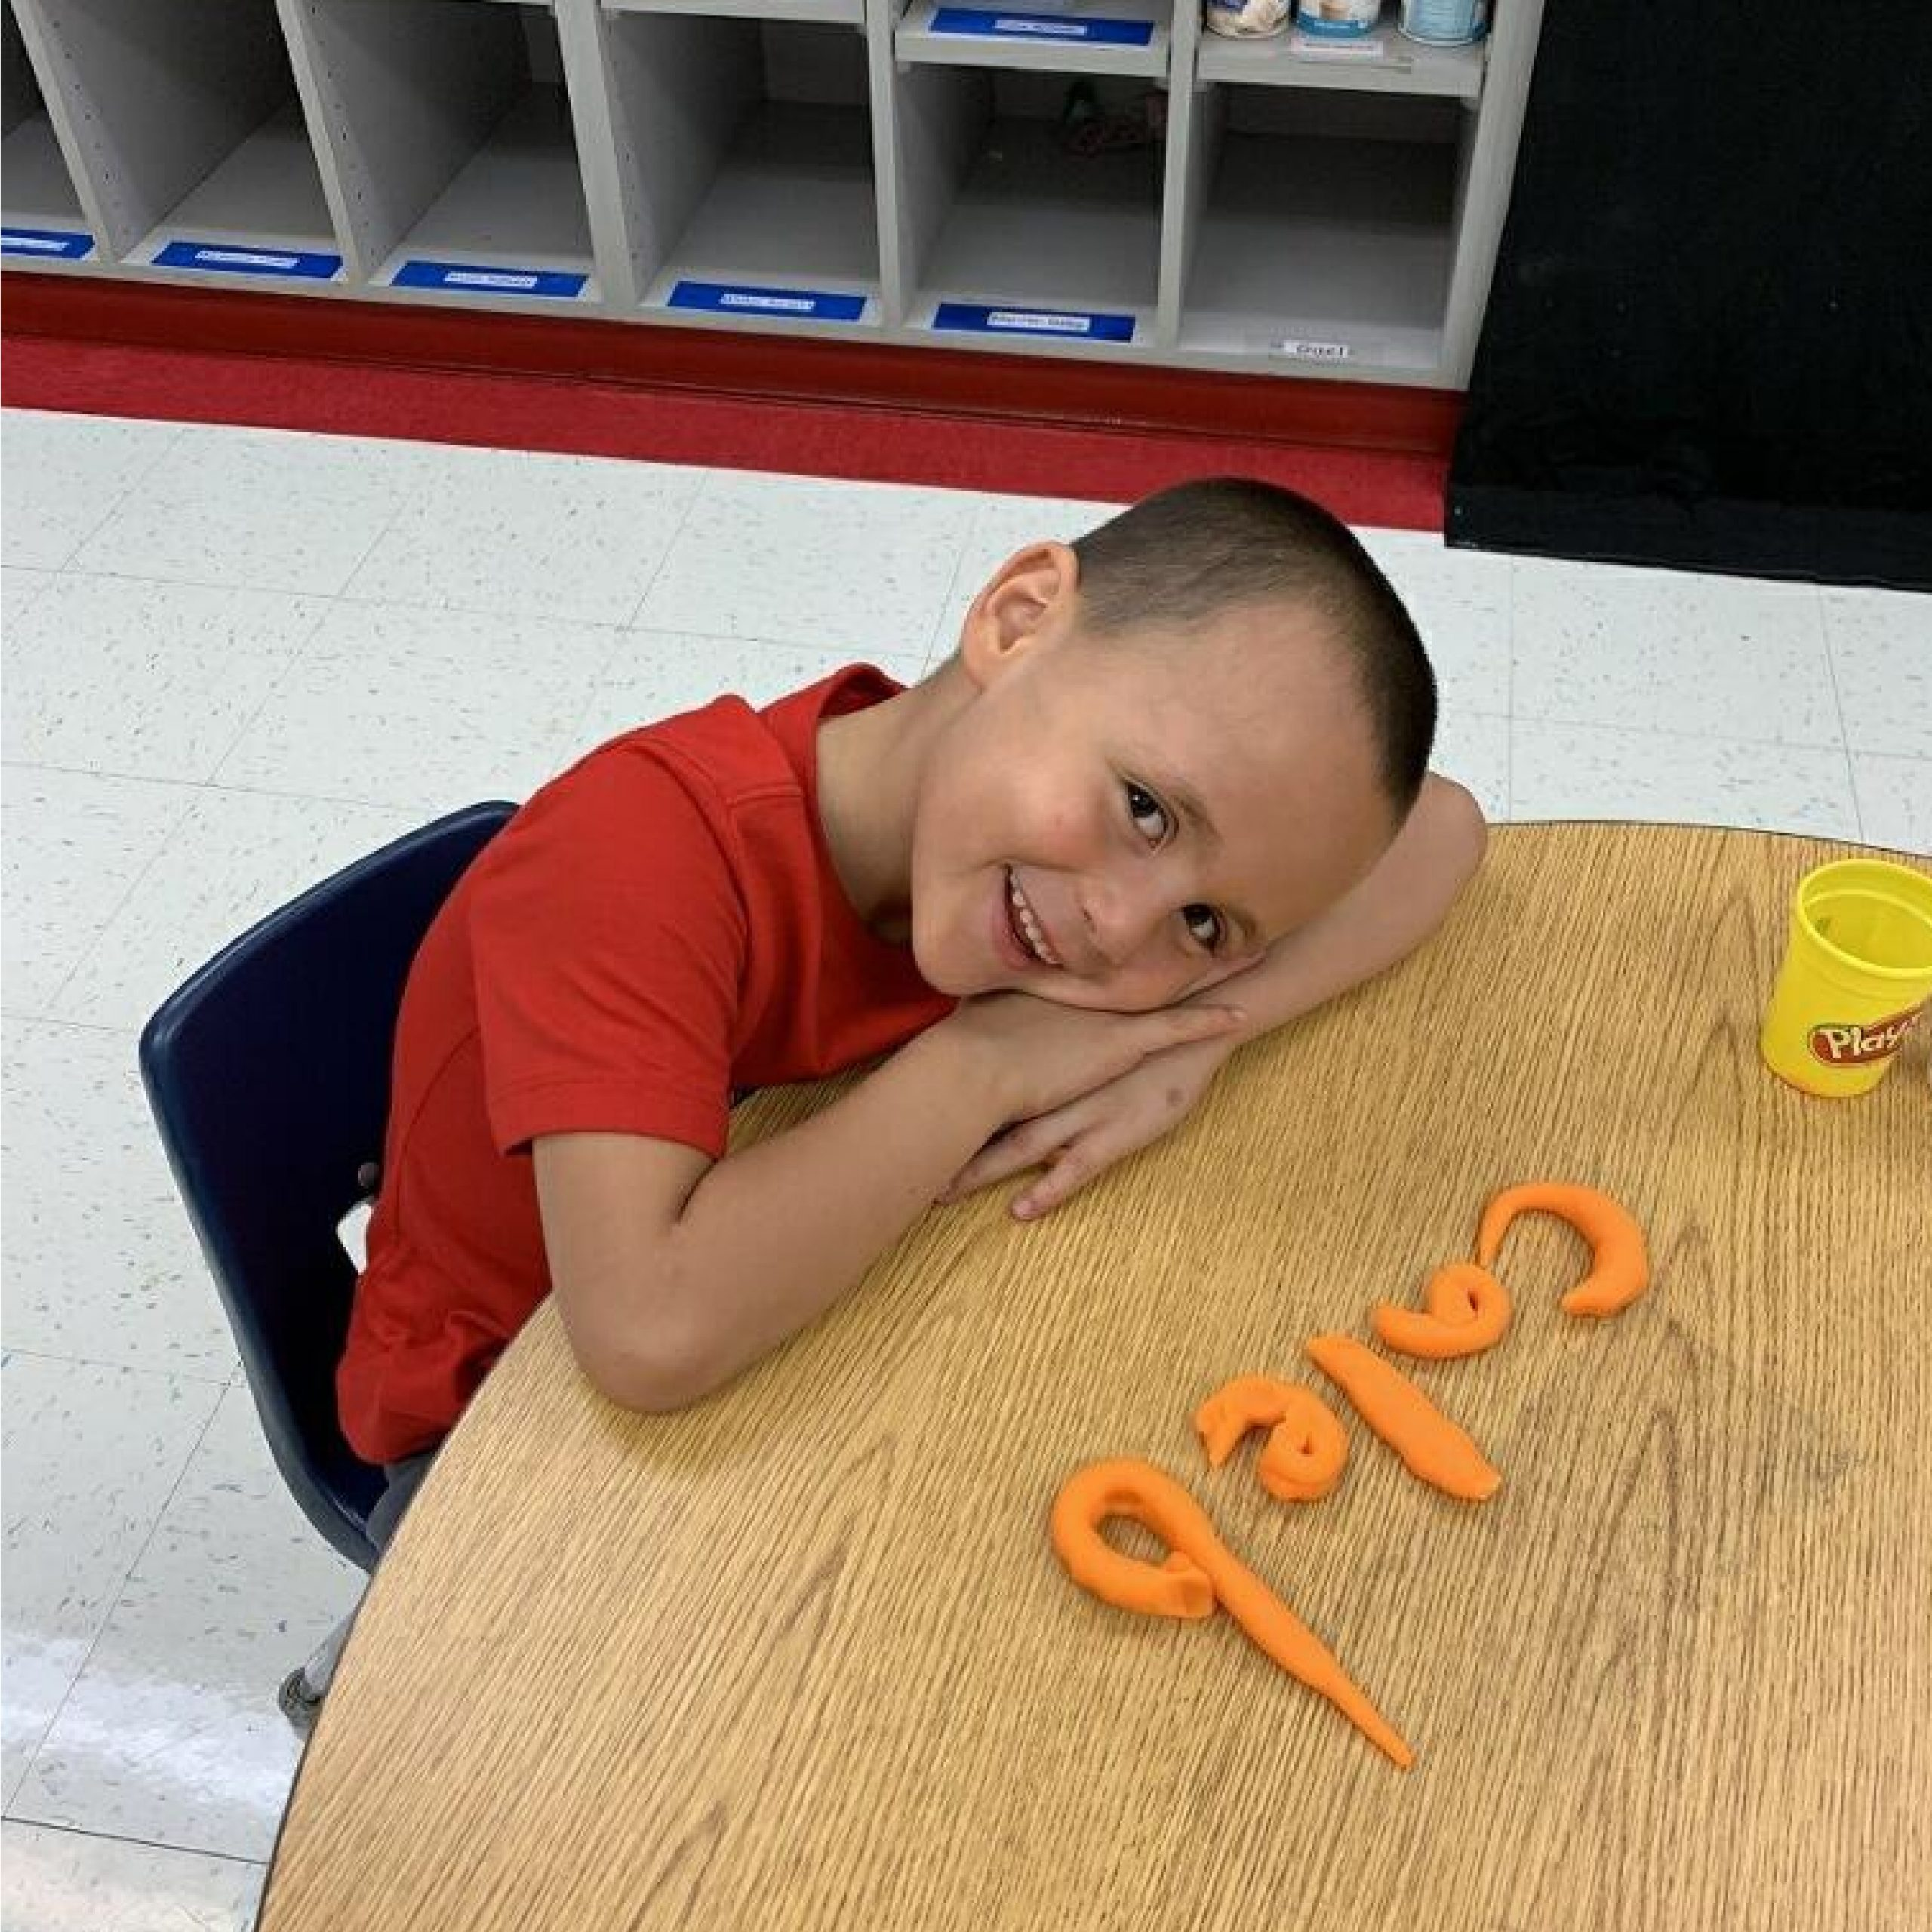 Caleb Fraisier forms his name with playdough during kinder camp at Cooleemee Elementary